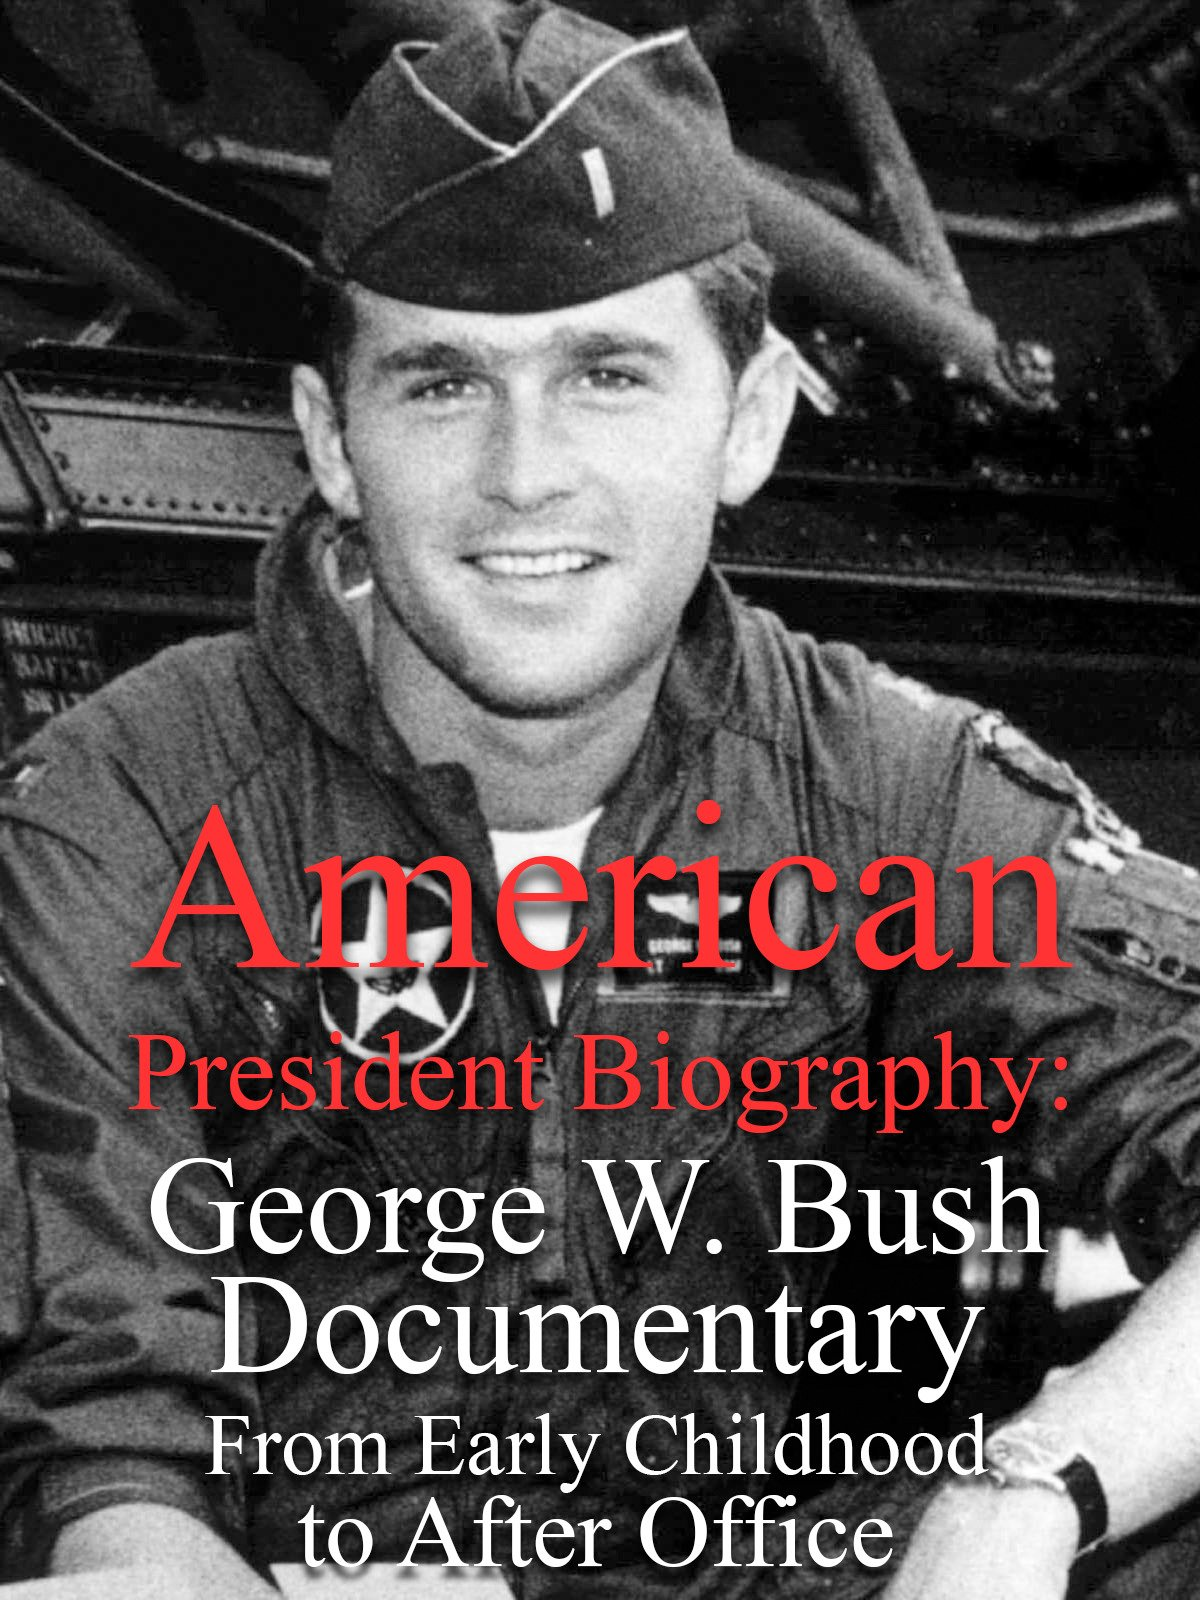 American President Biography: George W. Bush Documentary From Early Childhood to After Office